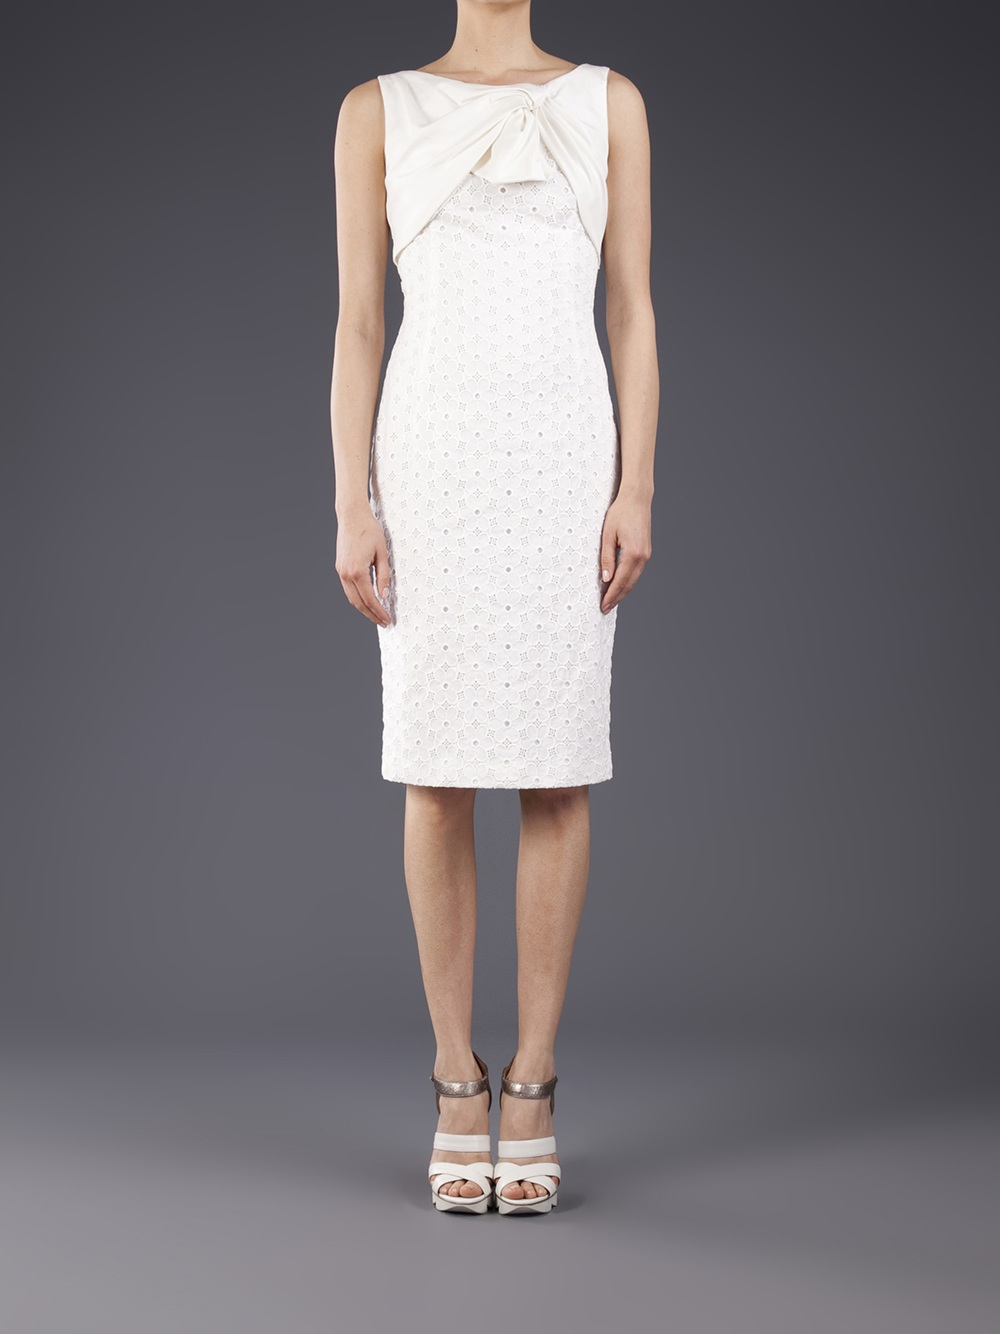 Many Kinds Of Sale Online Giambattista Valli tie bow dress Get To Buy For Sale Looking For mg9NES6